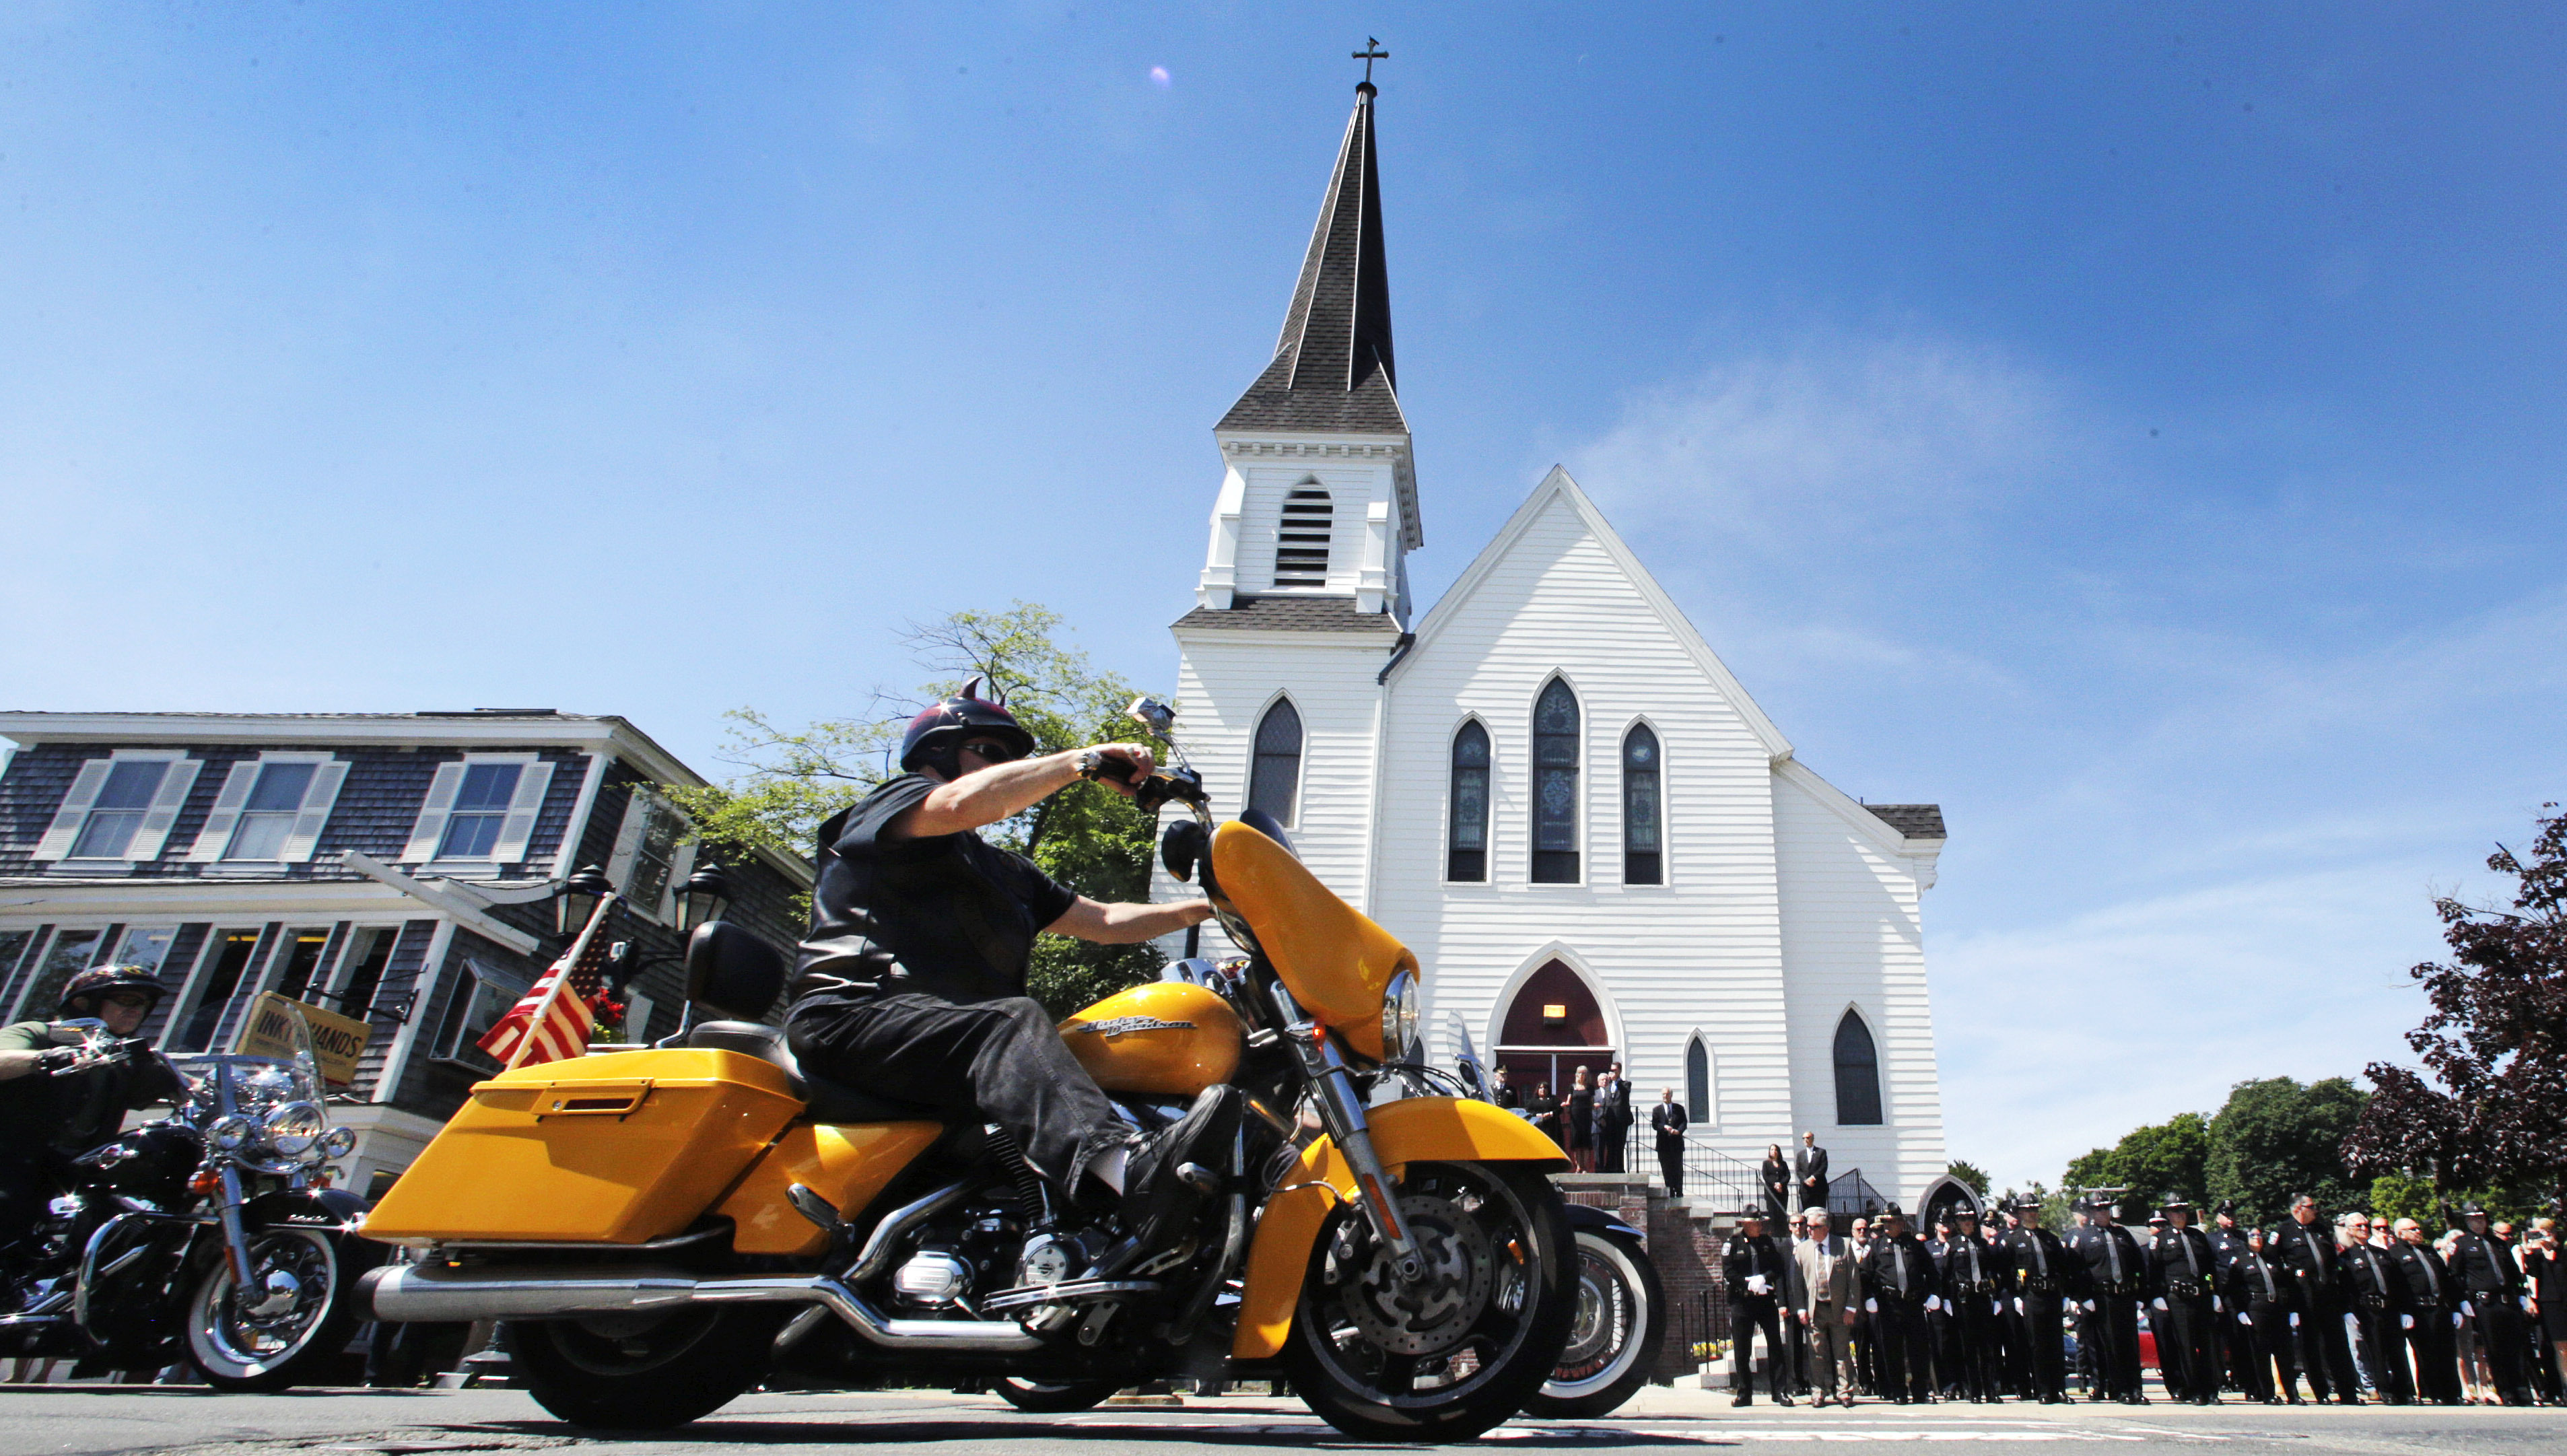 Bikers bidding farewell to those killed in pickup collision